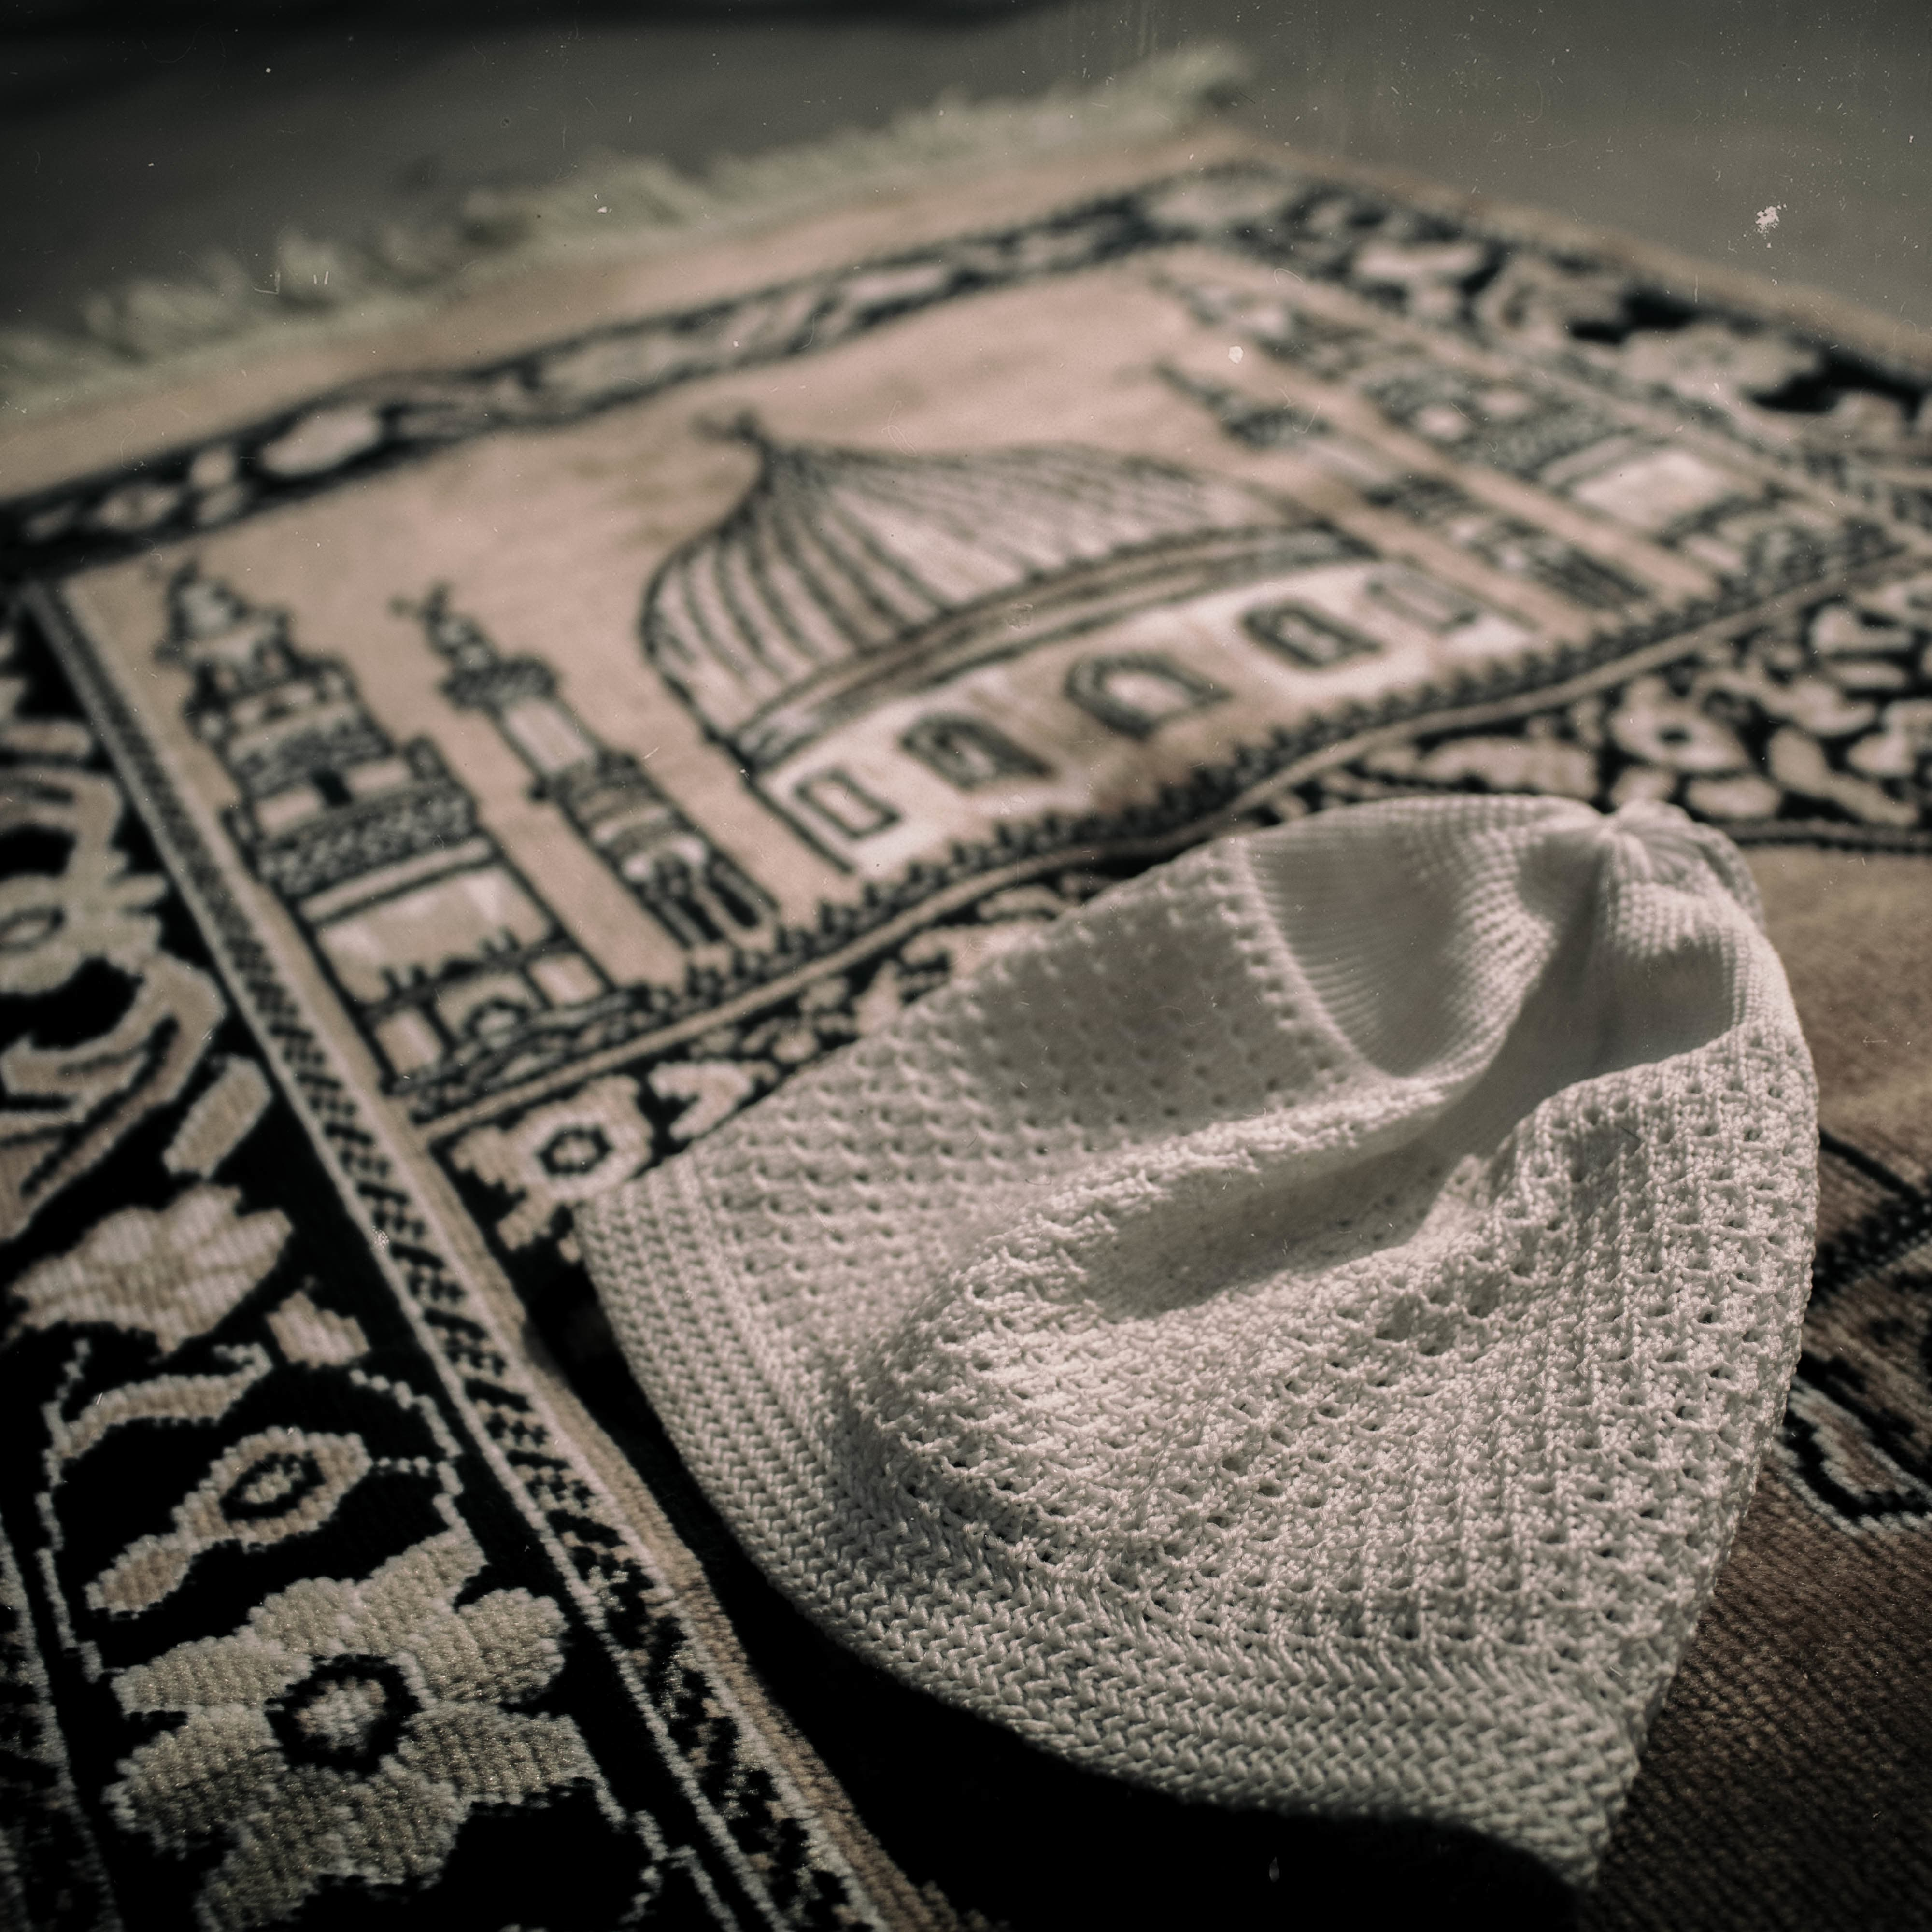 Prisoner Z's prayer mat and cap.—JPP